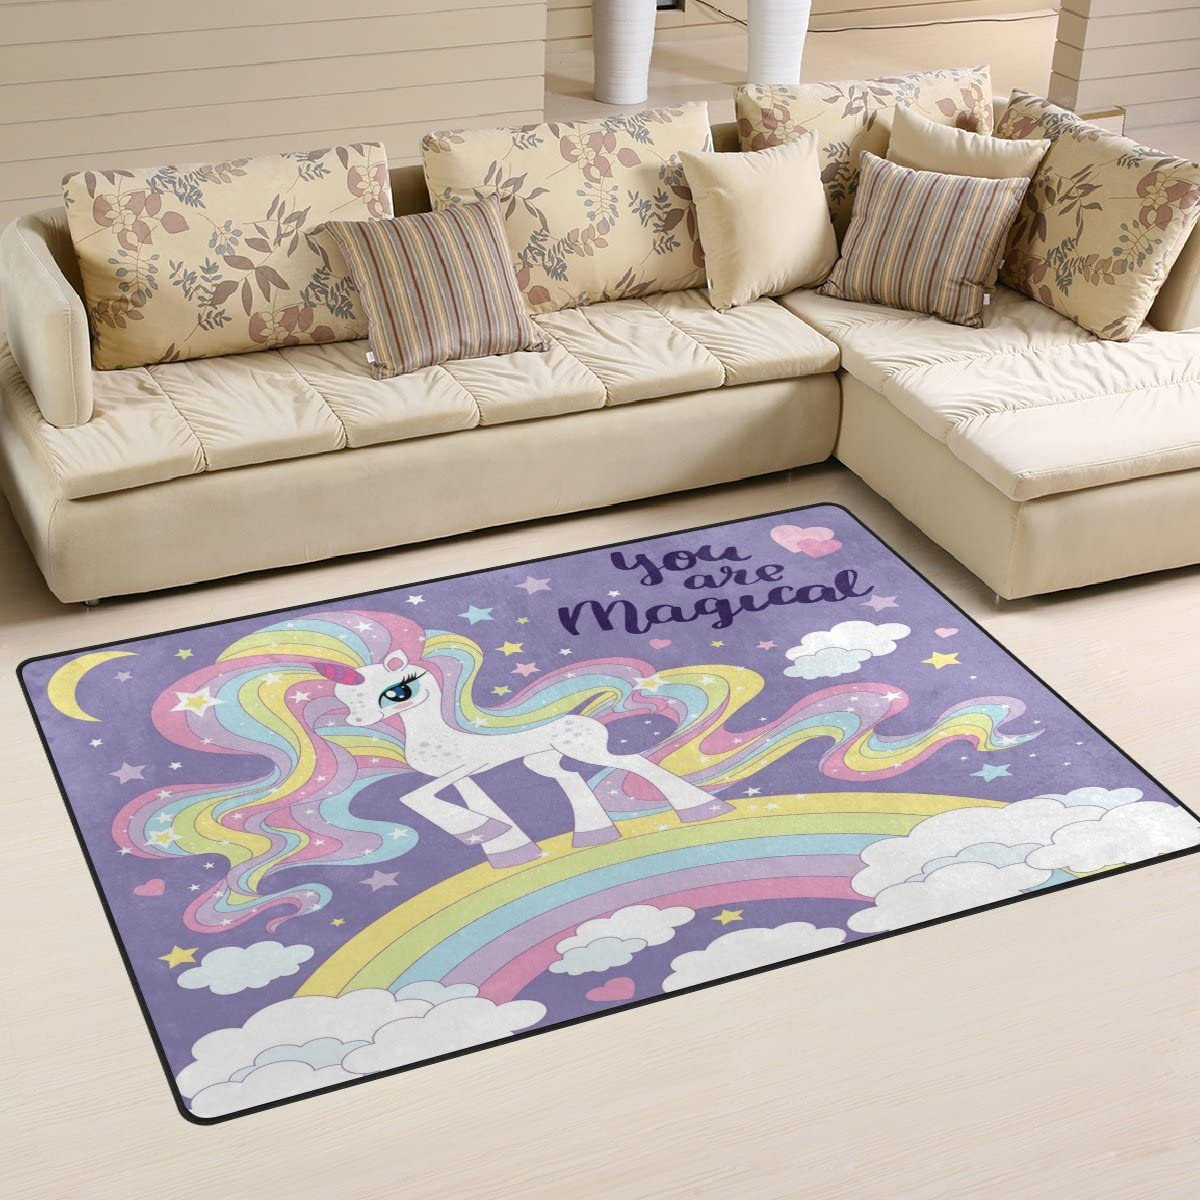 WOZO Beautiful Unicorn Rainbow Cloud Area Rug Rugs Non-Slip Floor Mat Doormats Living Dining Room Bedroom Dorm 60 x 39 inches inches Home Decor